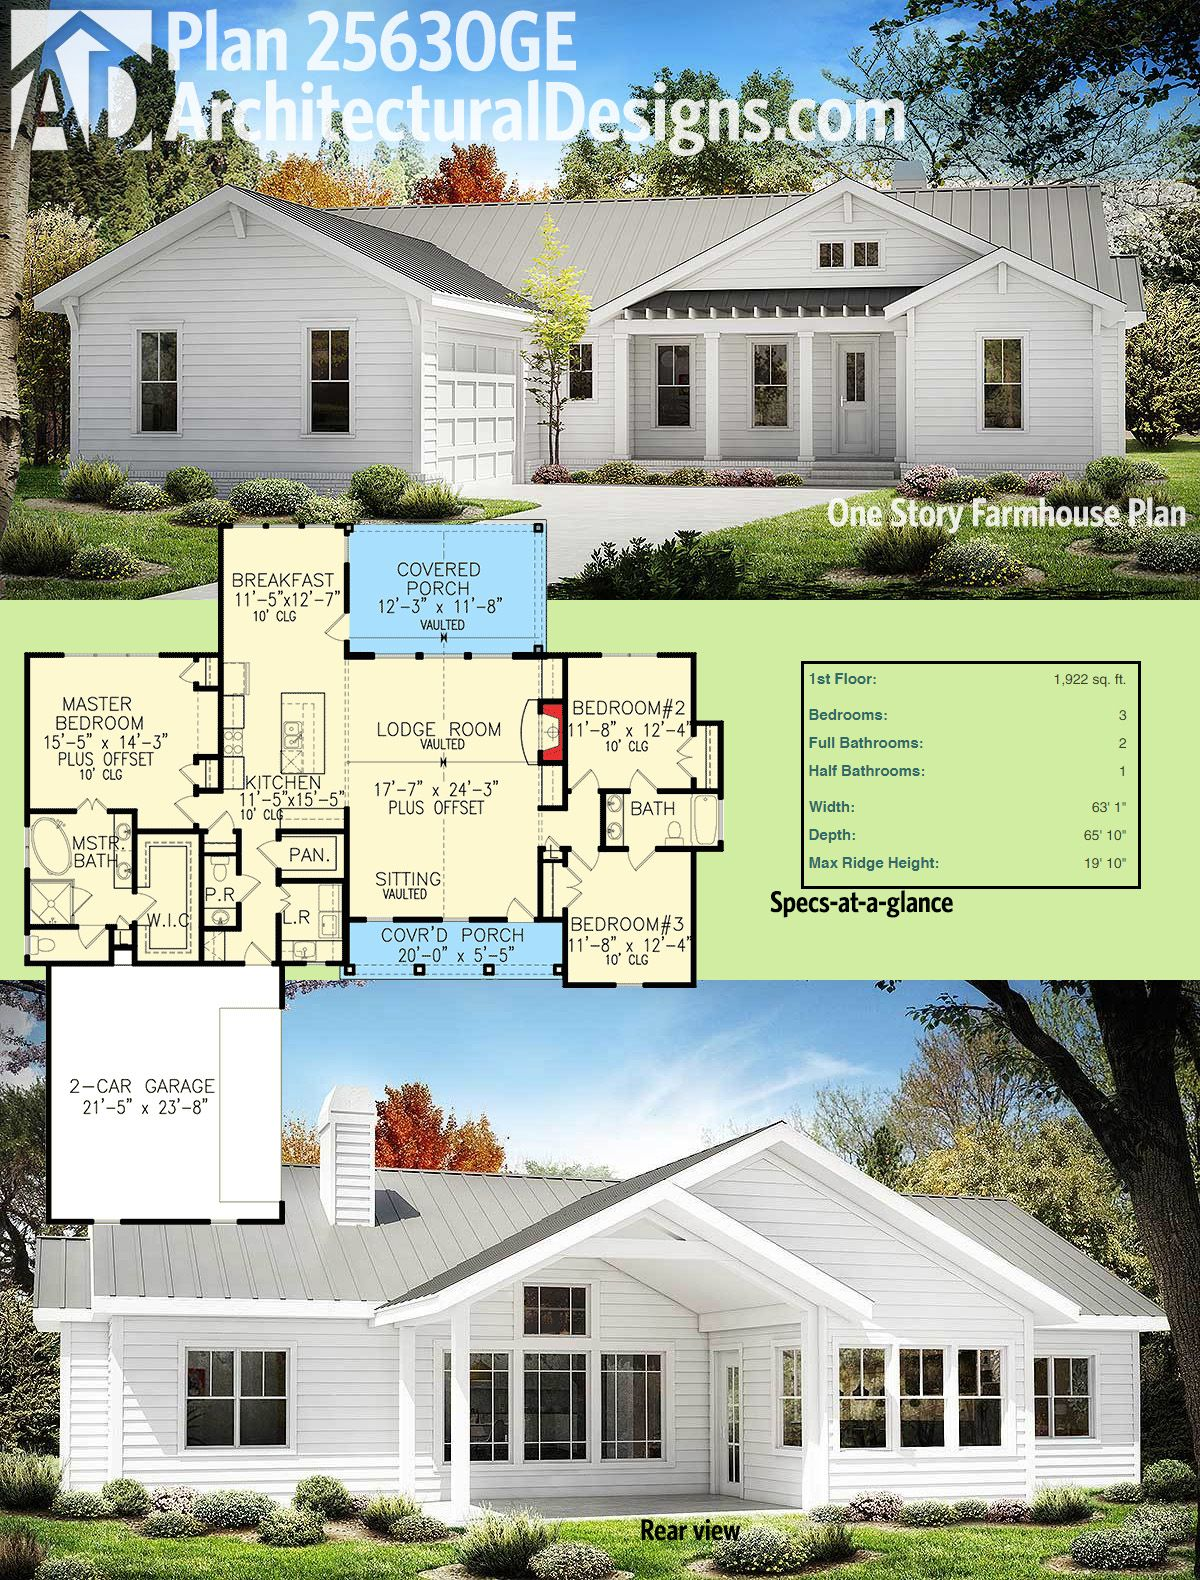 Plan 25630ge one story farmhouse plan farmhouse plans for One level farmhouse plans